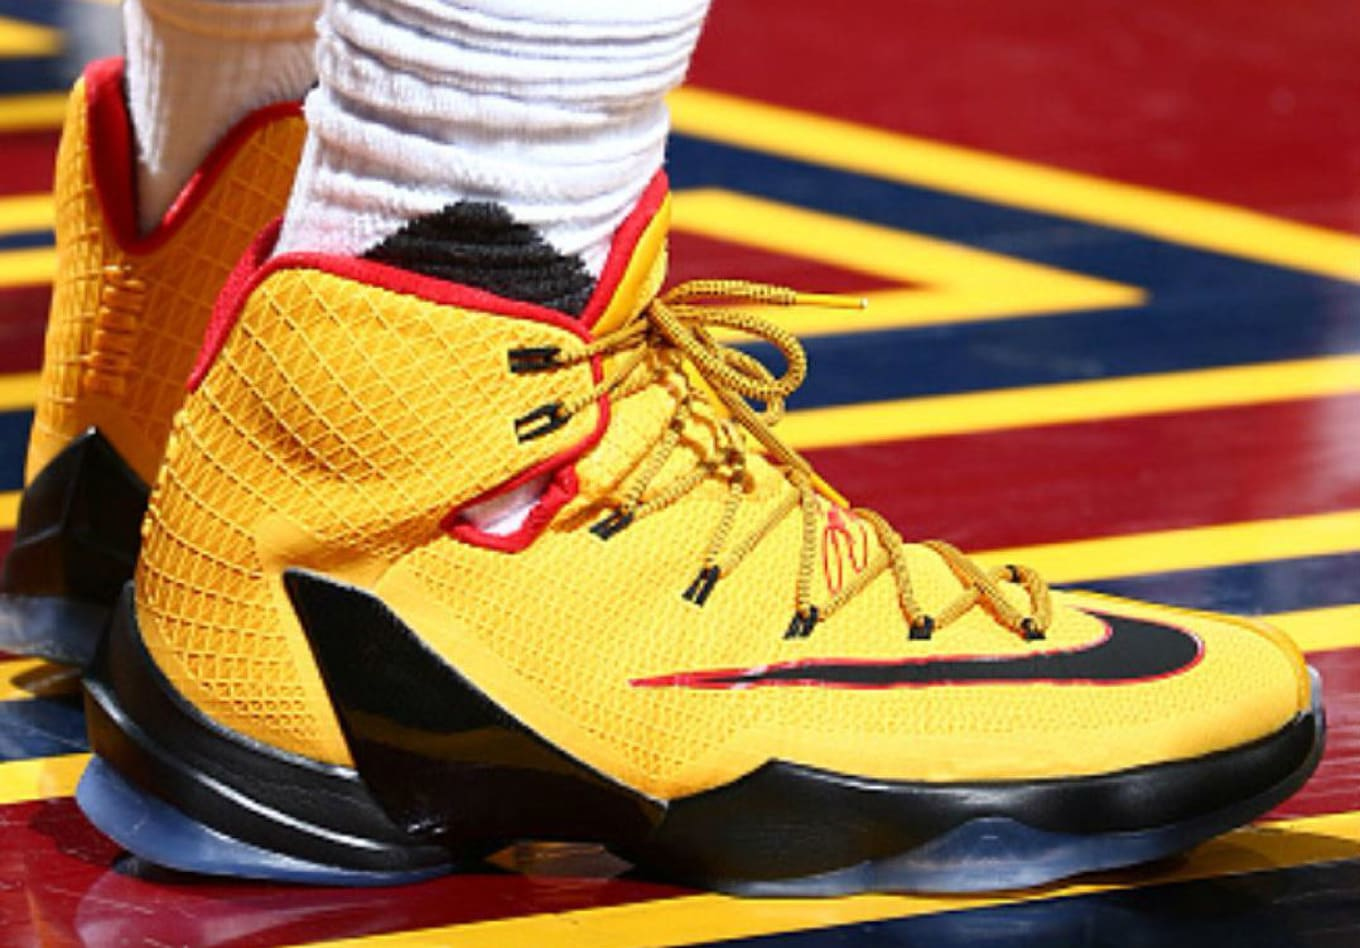 big sale dde6d 68b9d LeBron James Wearing a Yellow Black-Red Nike LeBron 13 Elite PE (1